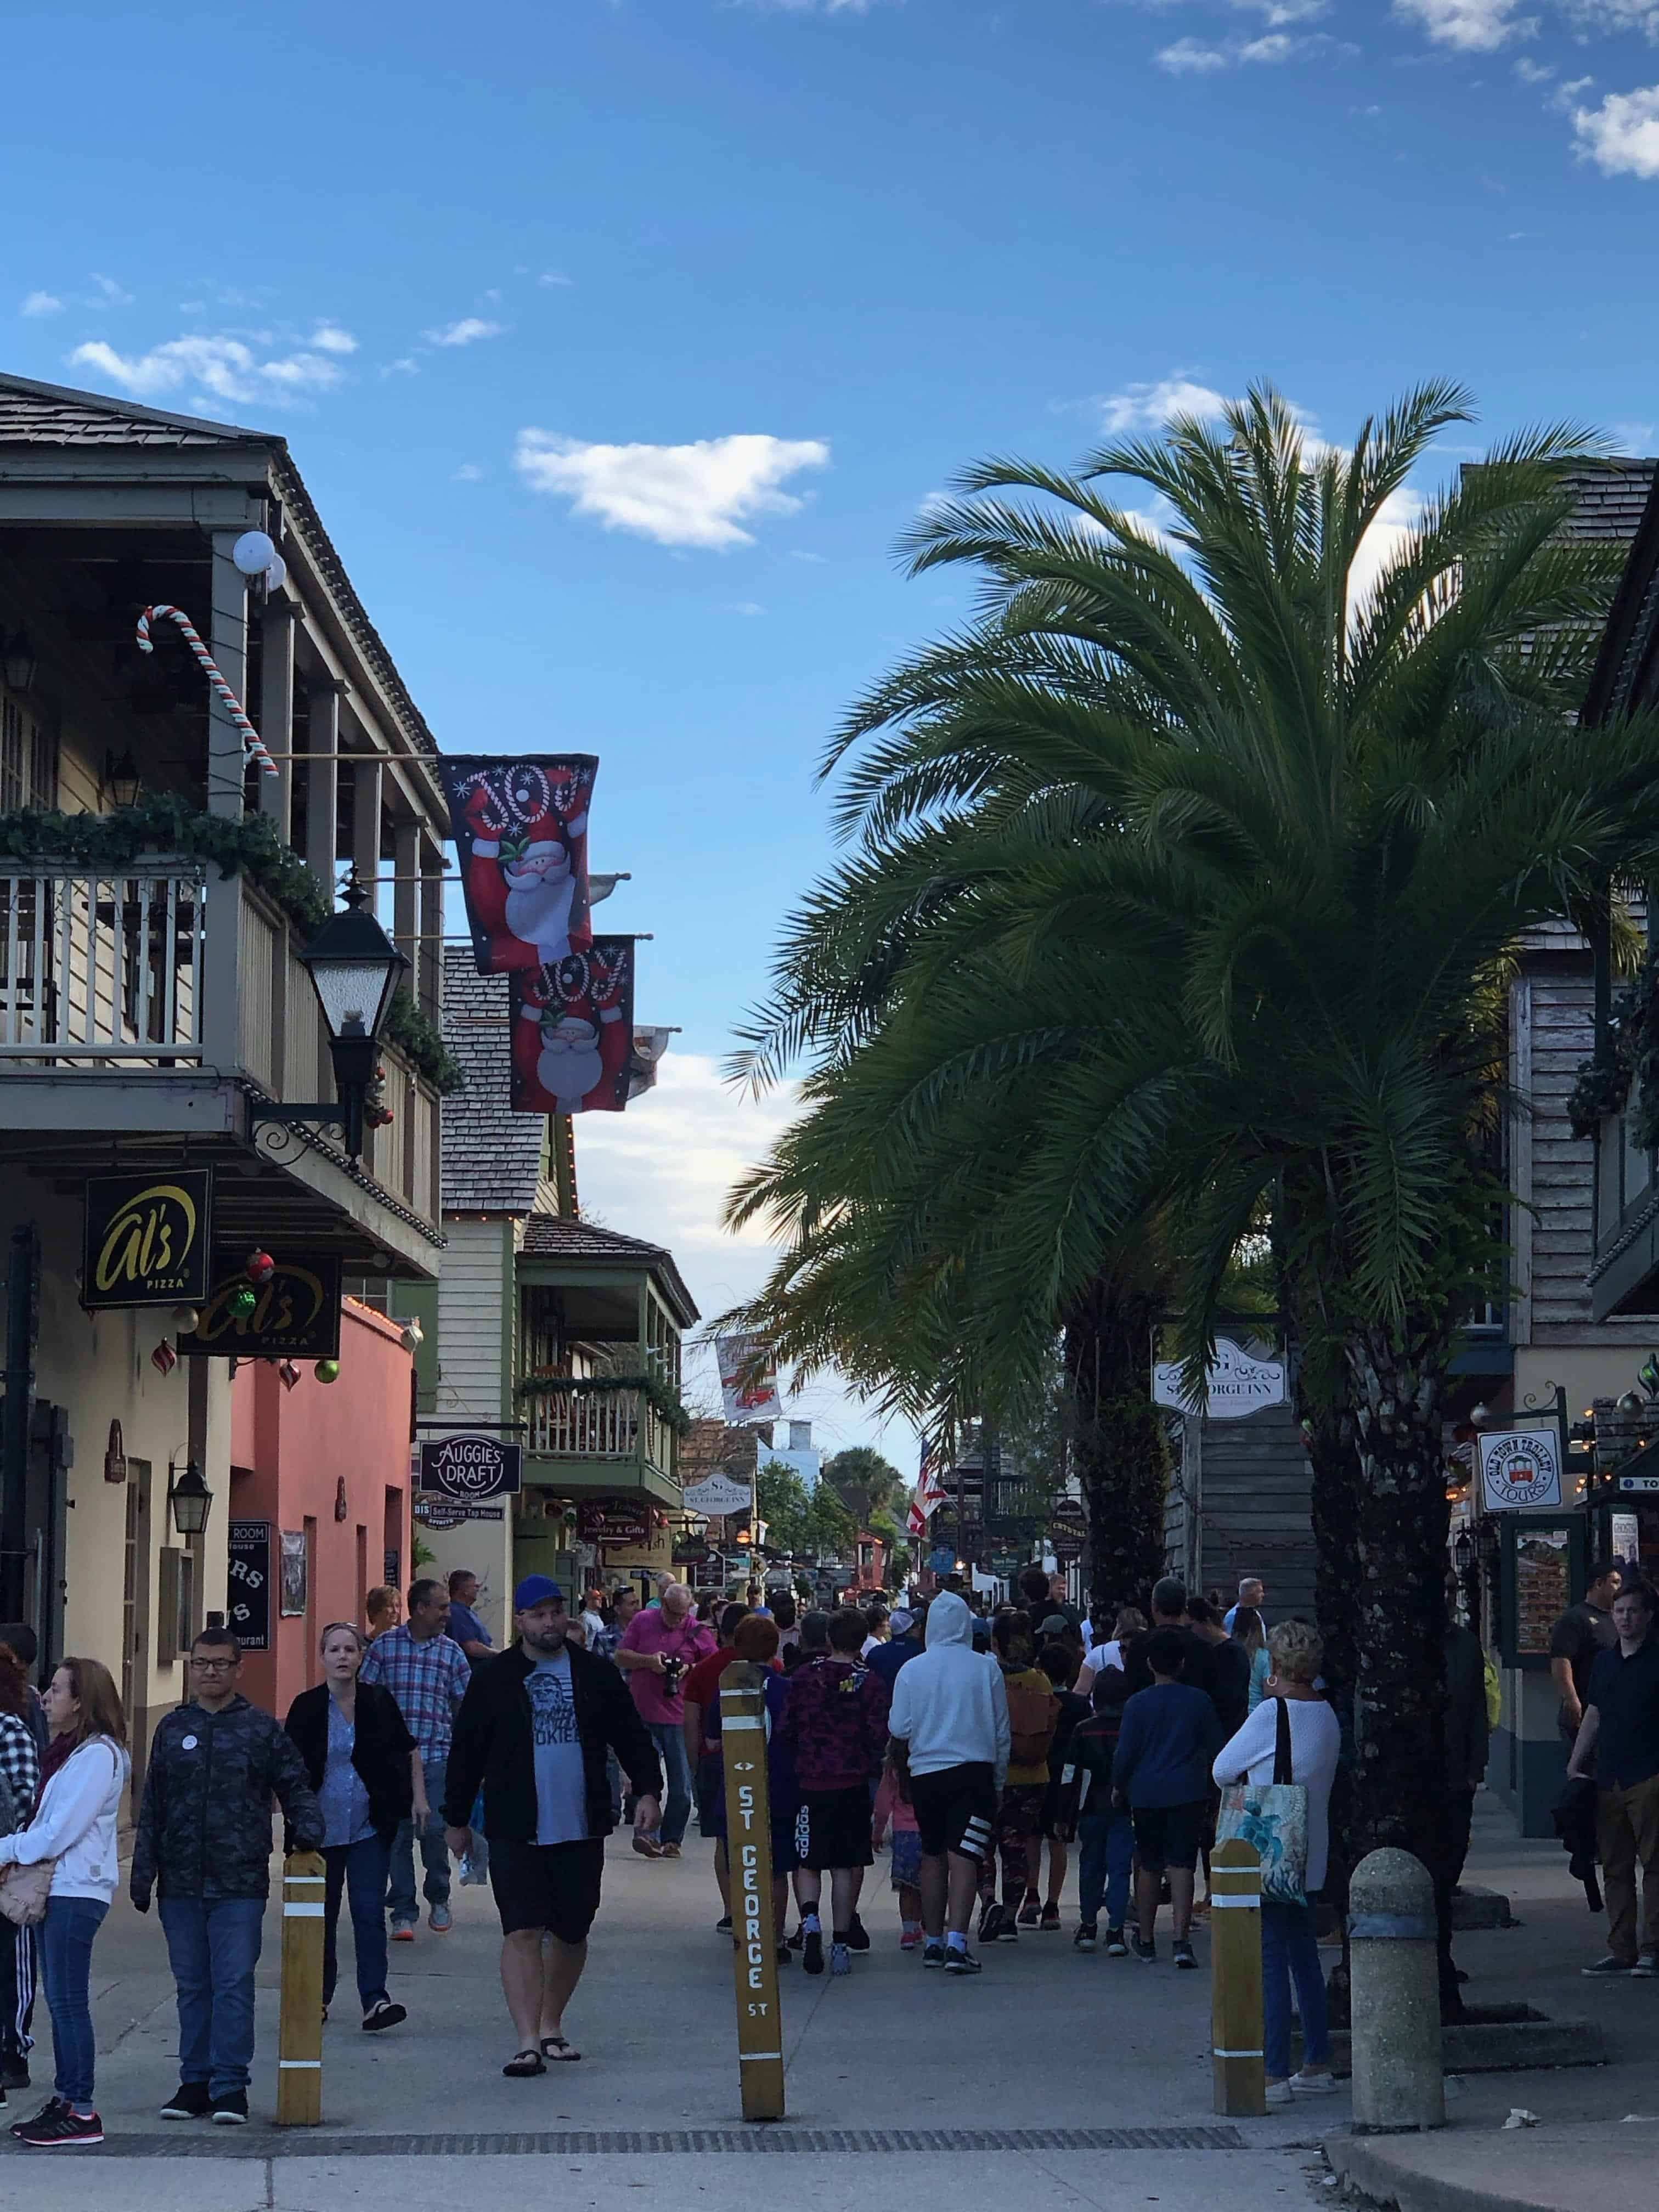 One of the busiest street in St. Augustine is St. George Street, where visitors can see street performers, several shops, restaurants and even tourists attractions. It is also a pedestrian-only road!